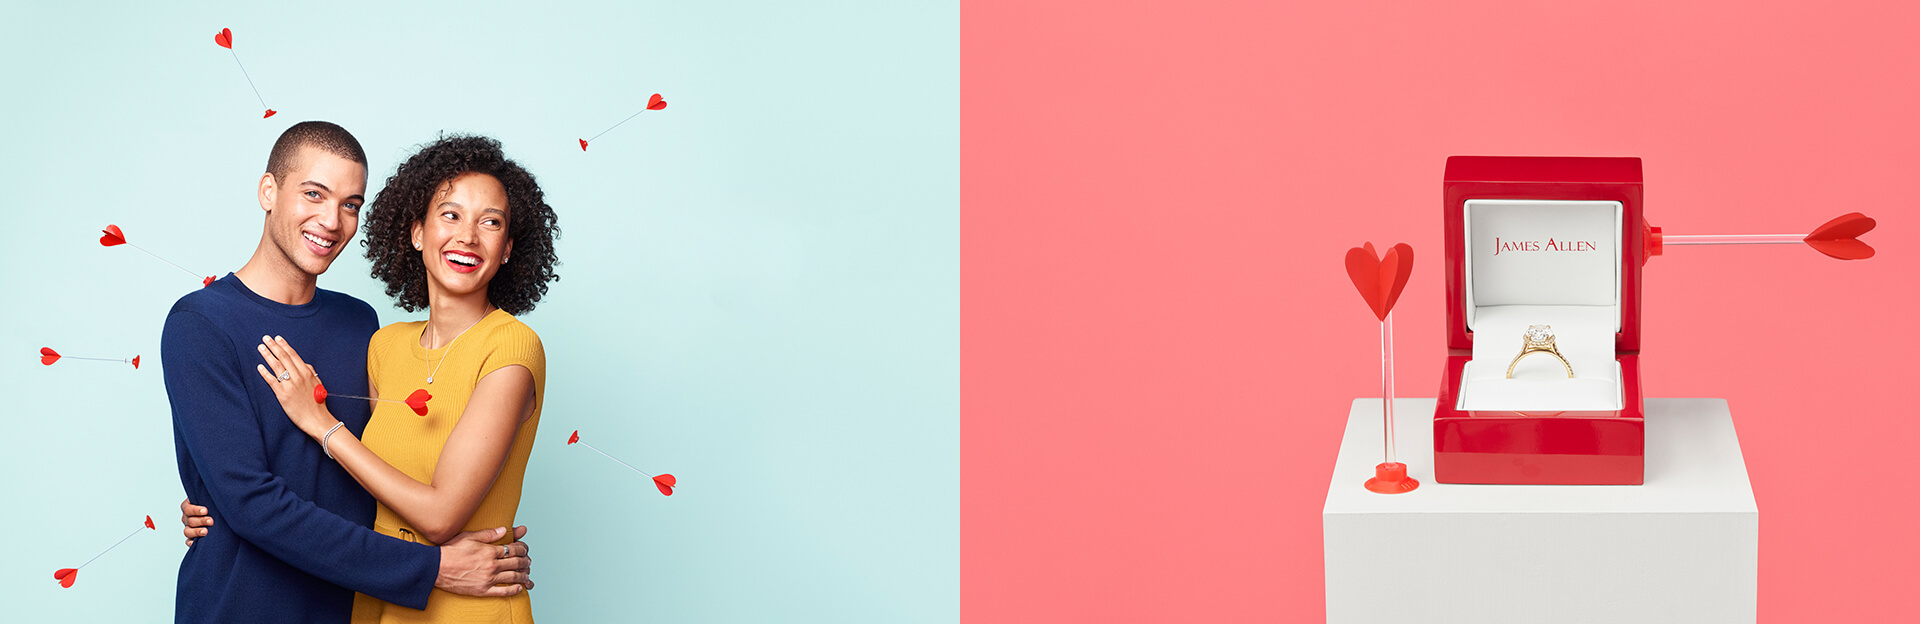 Two images side by side. Left hand image is a couple hugging each other as arrows are being launched at them. Right hand image is of an engagement ring inside a red box with mini arrows nearby.